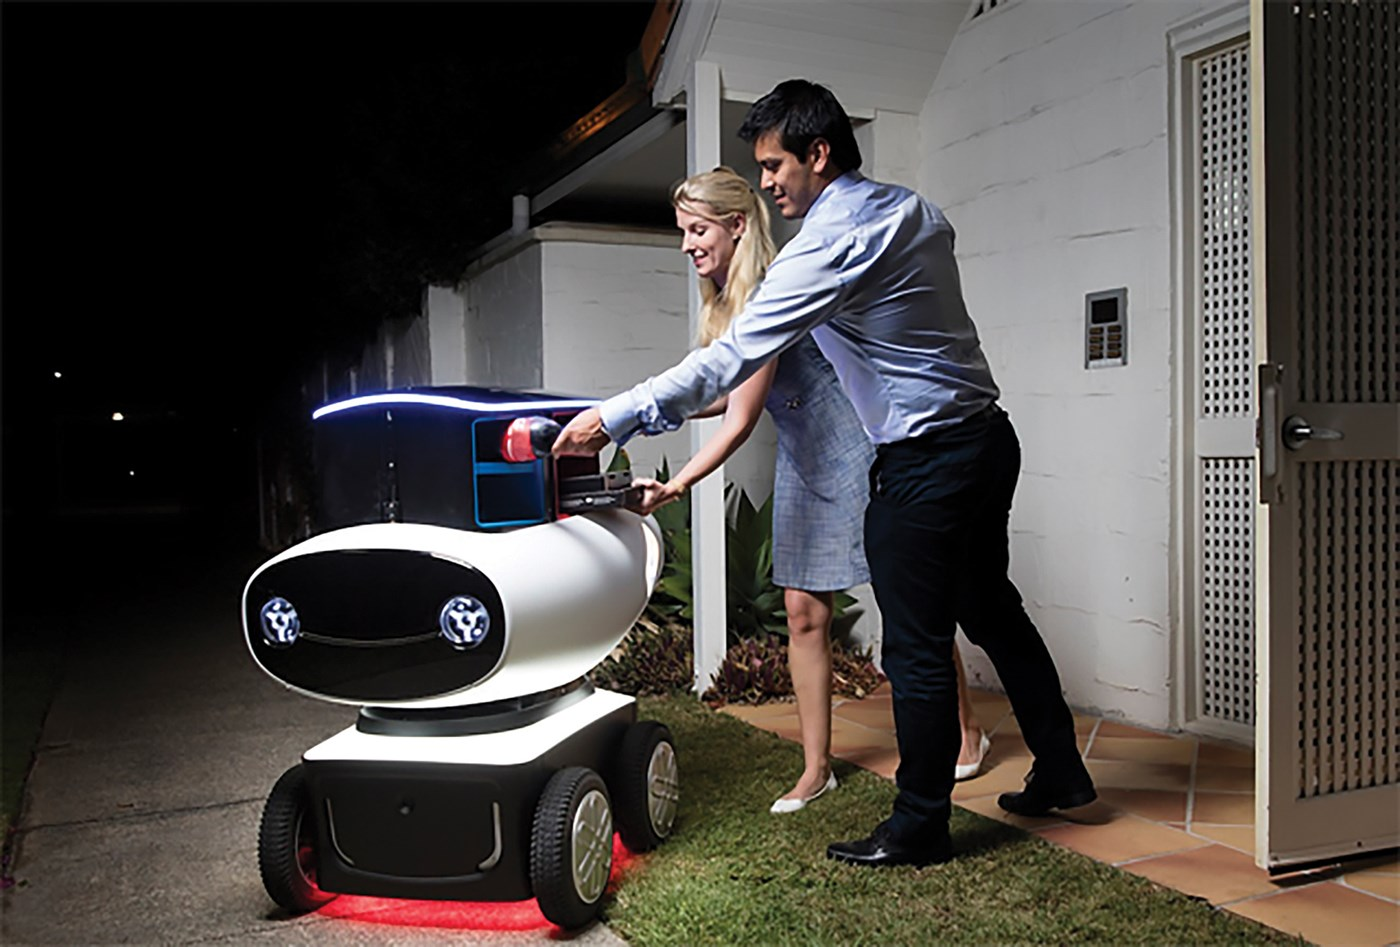 Robot delivering pizza to a couple